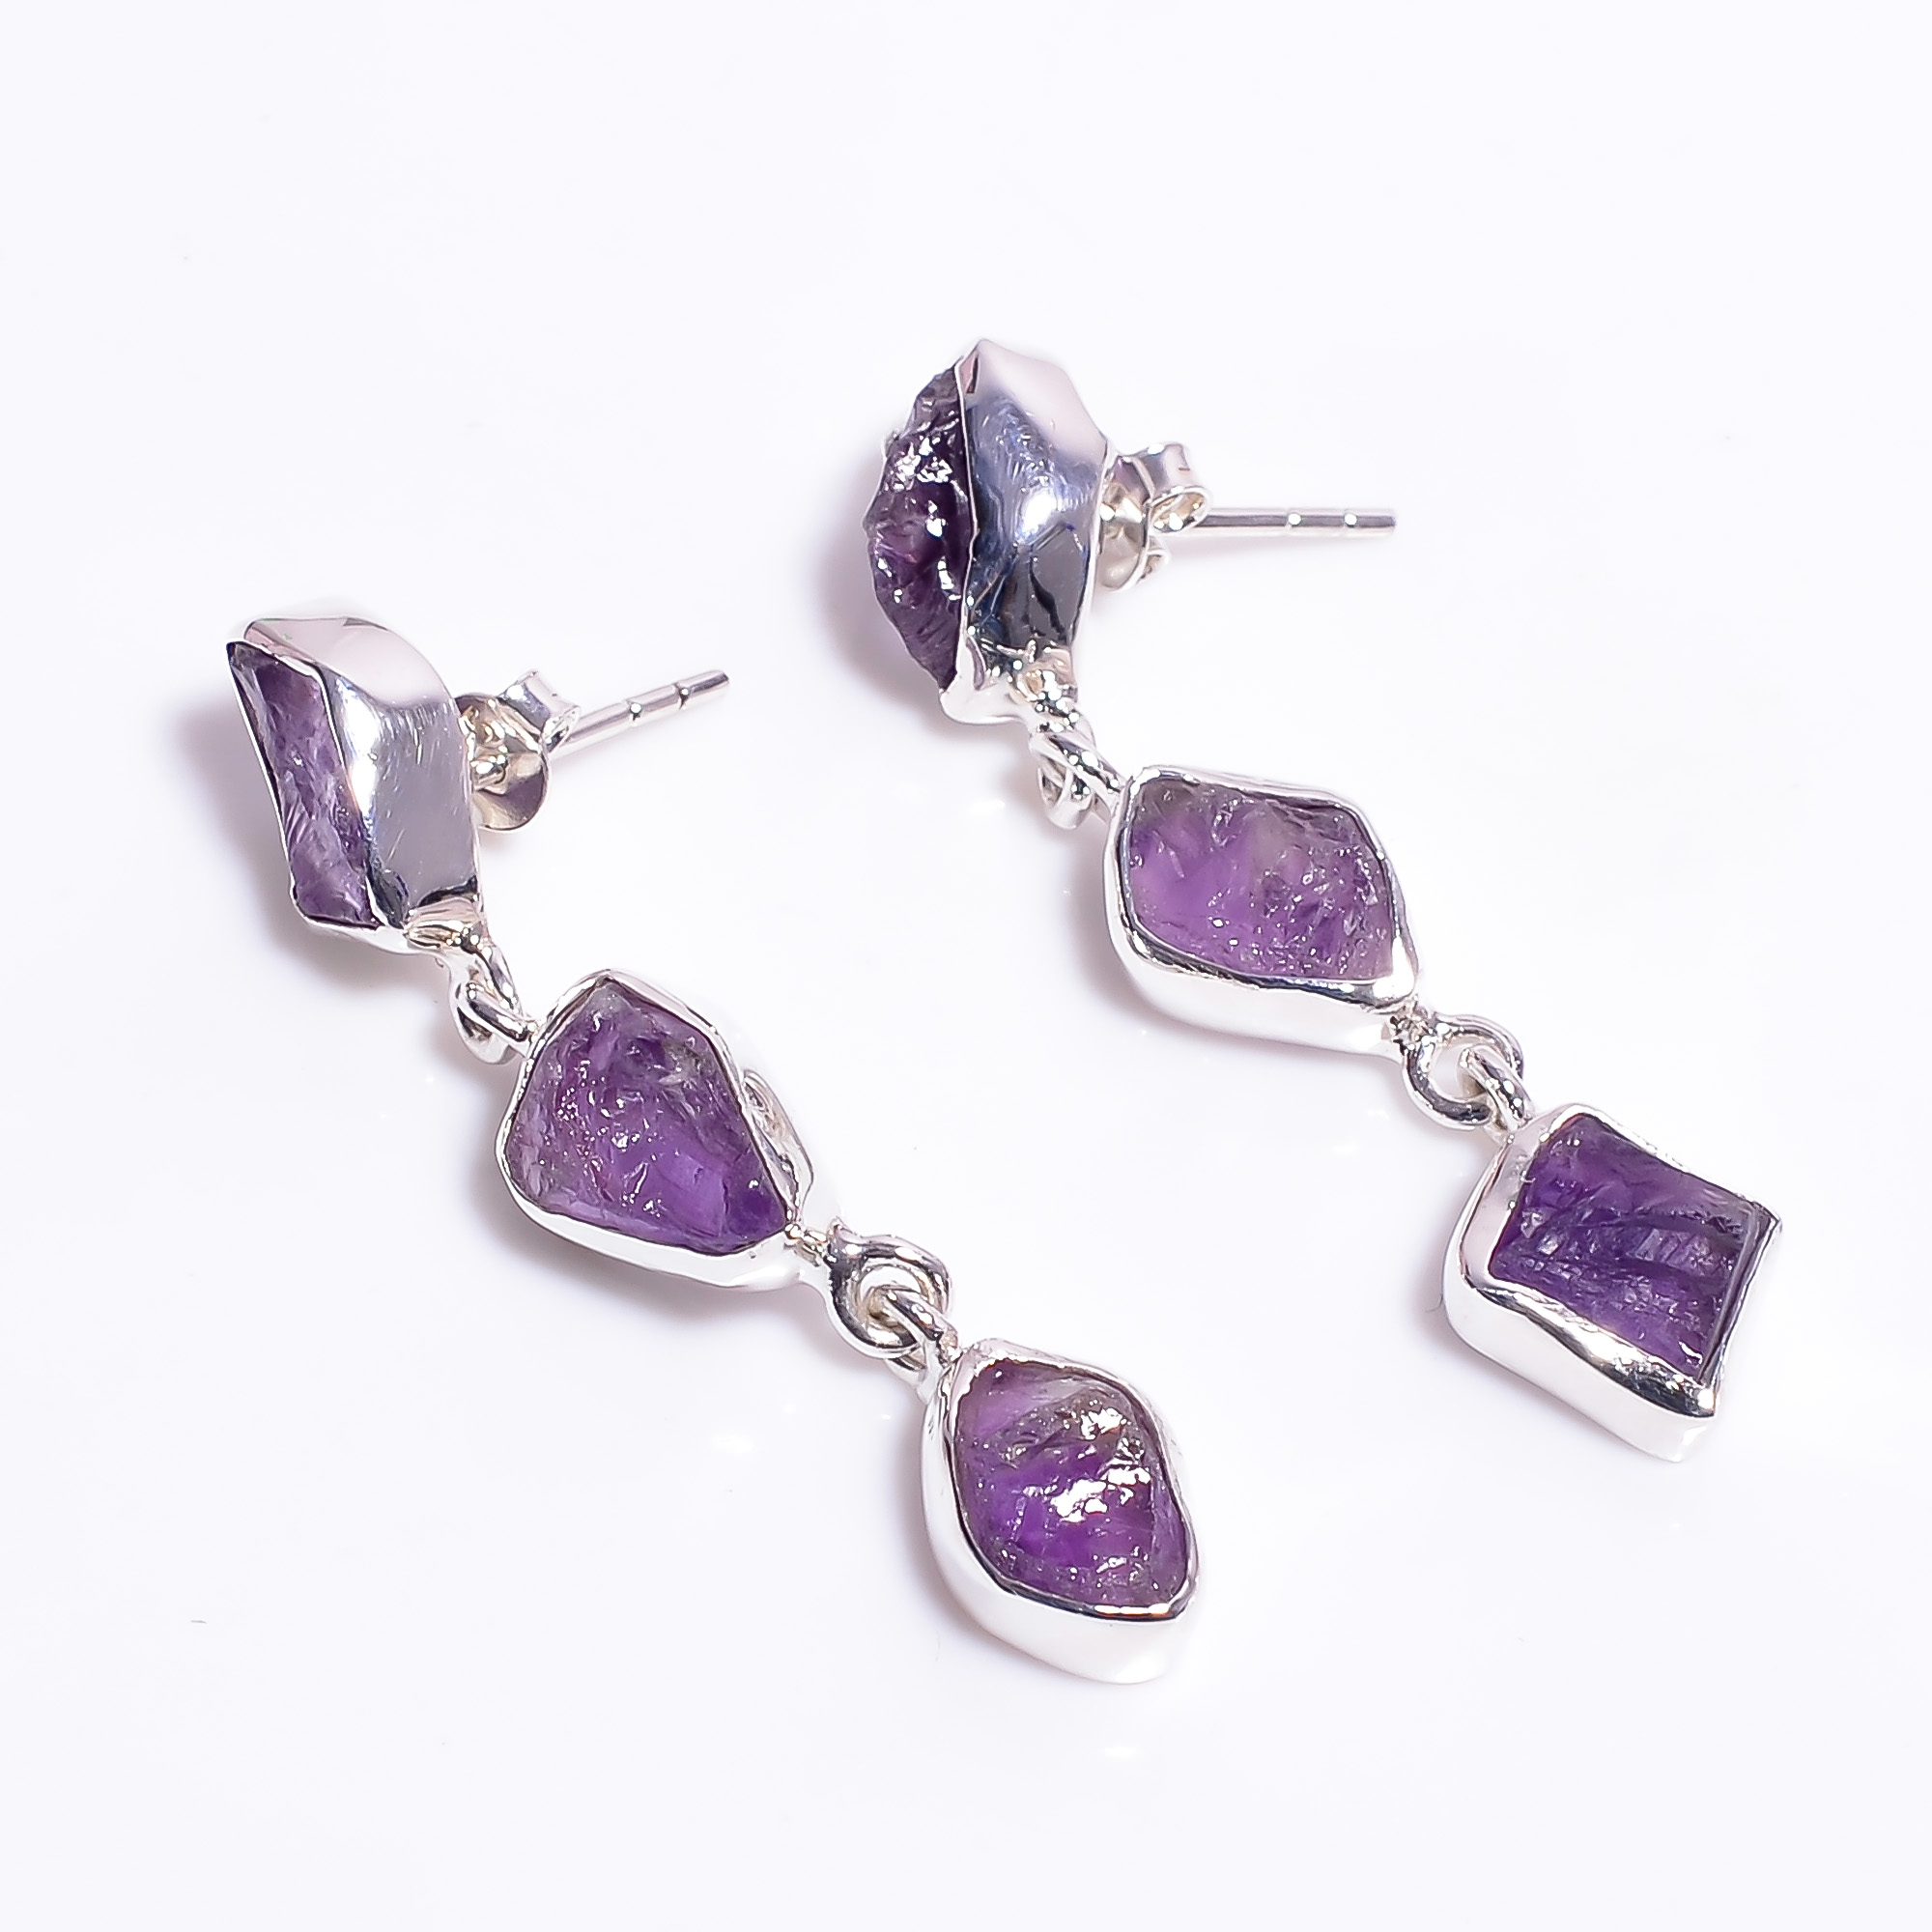 Natural Raw Amethyst Gemstone 925 Sterling Silver Earrings